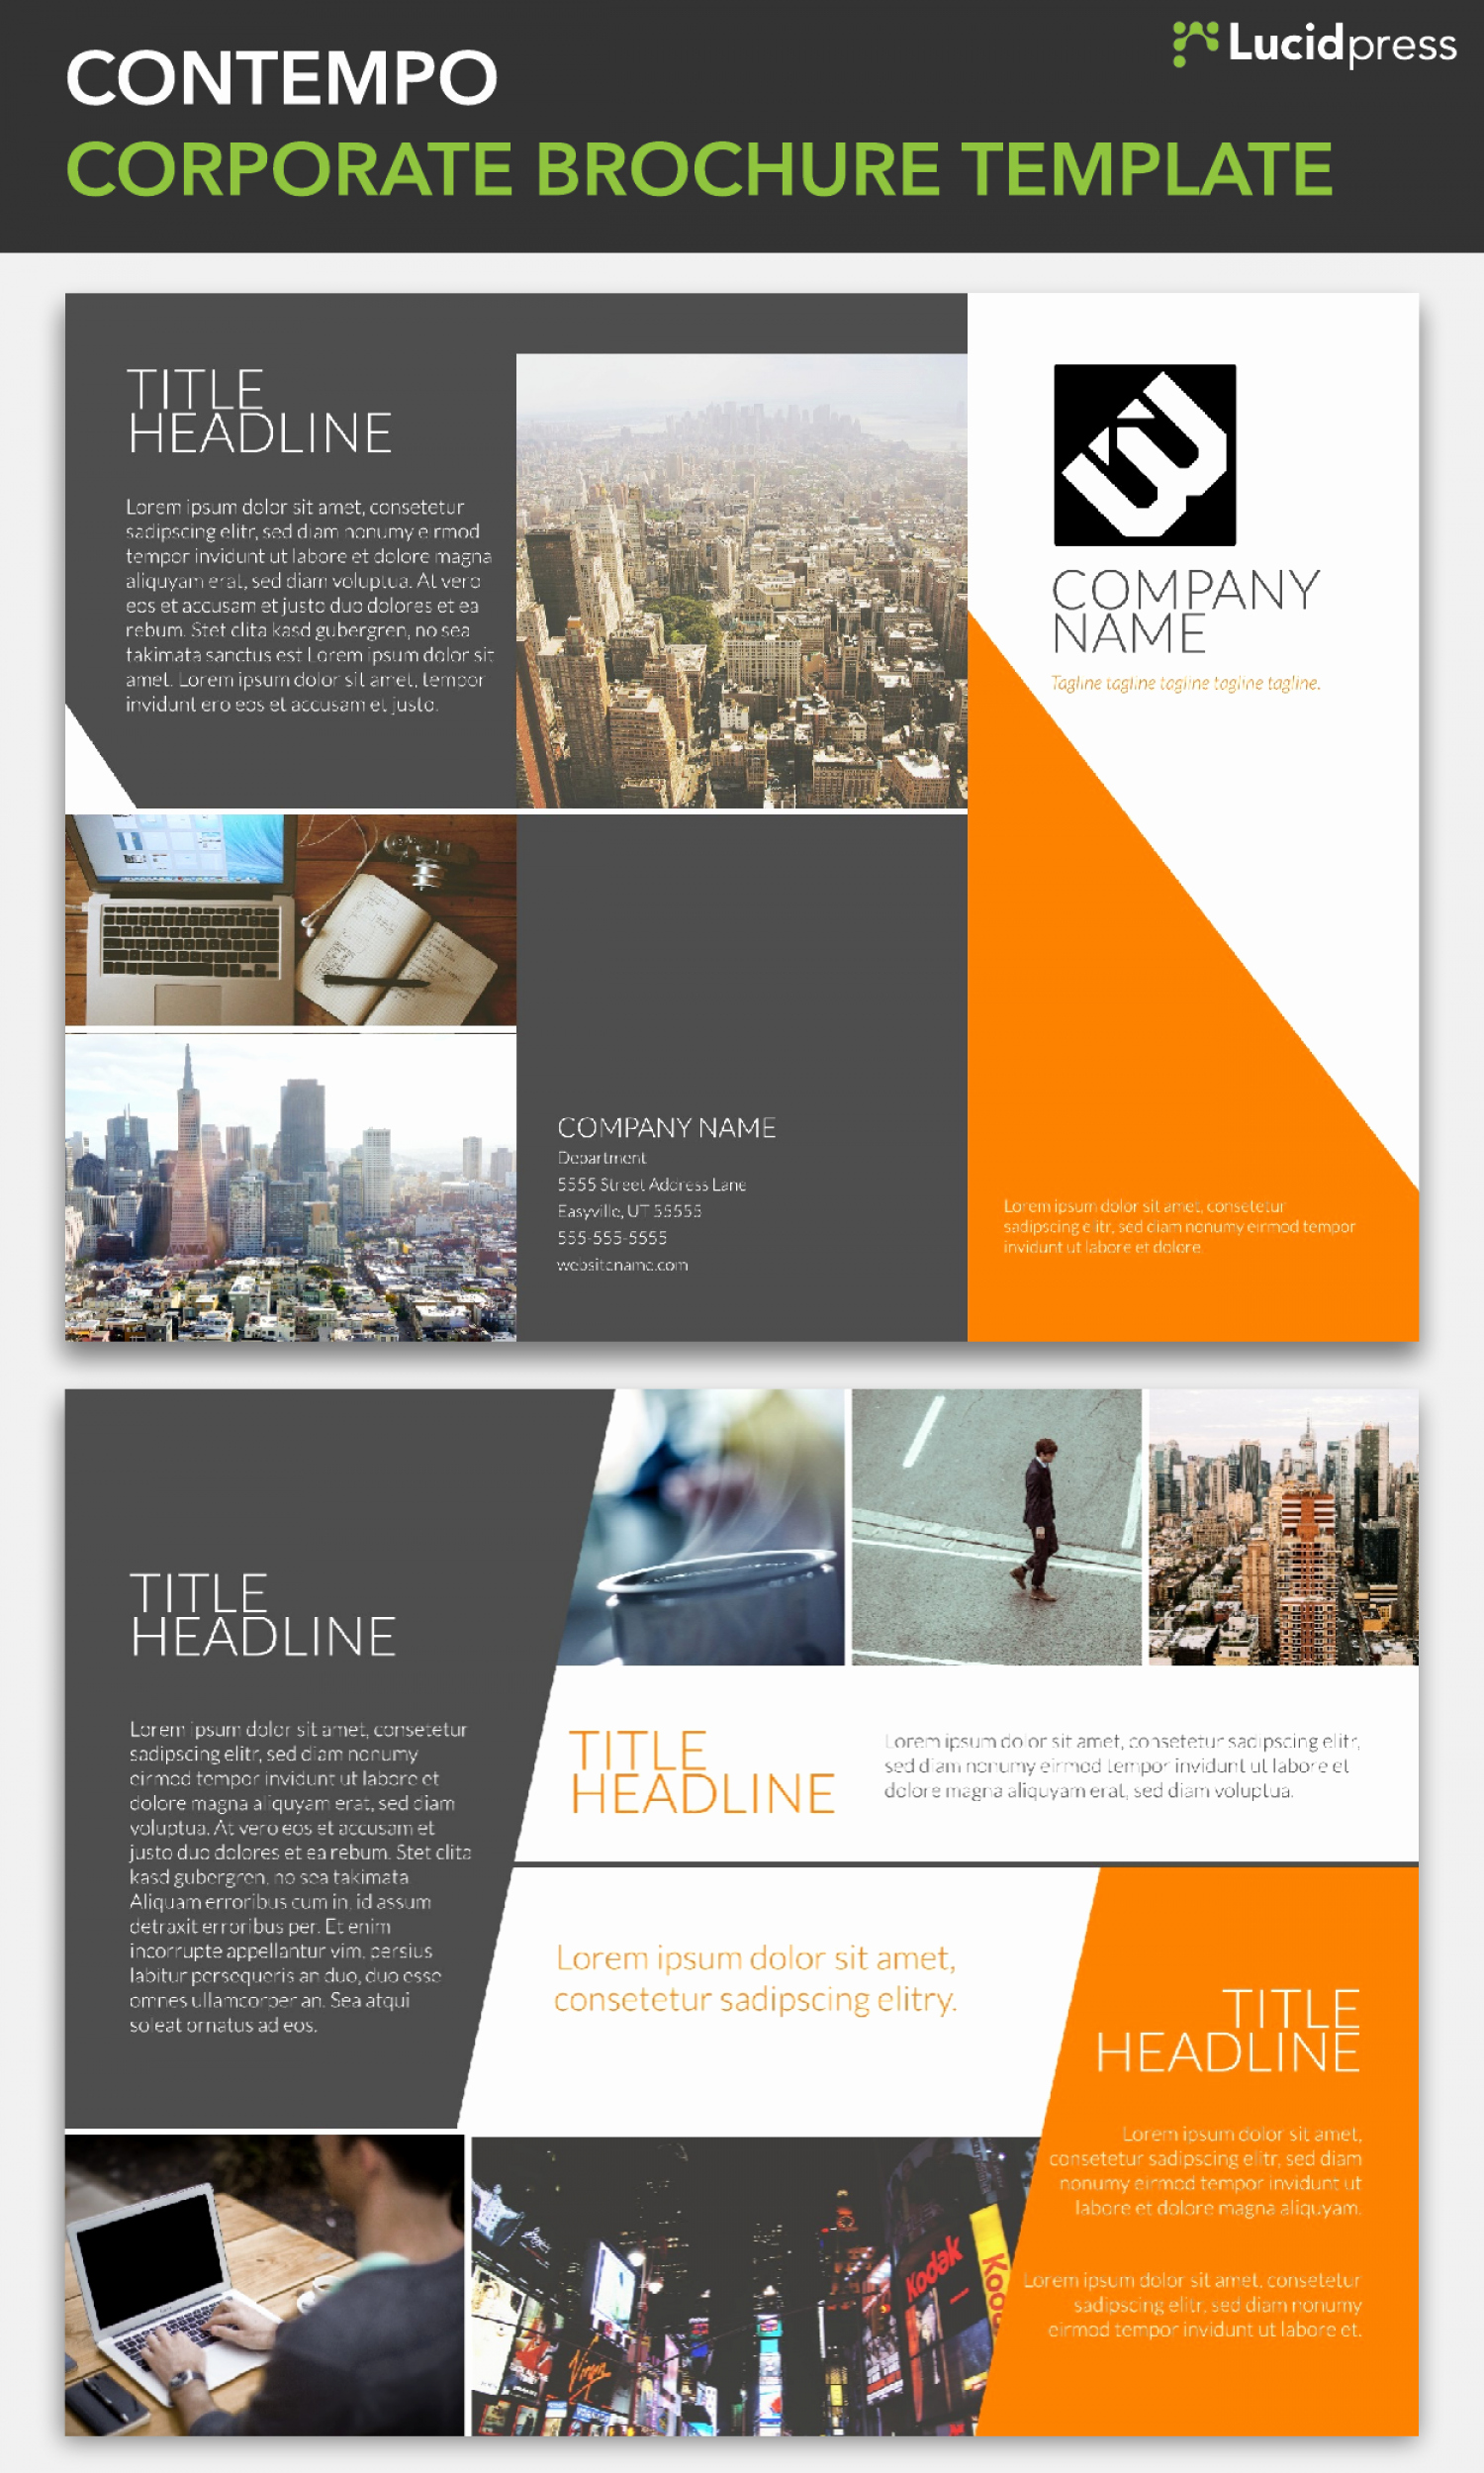 Templates for Flyers and Brochures Unique Corporate Brochure Template Lucidpress